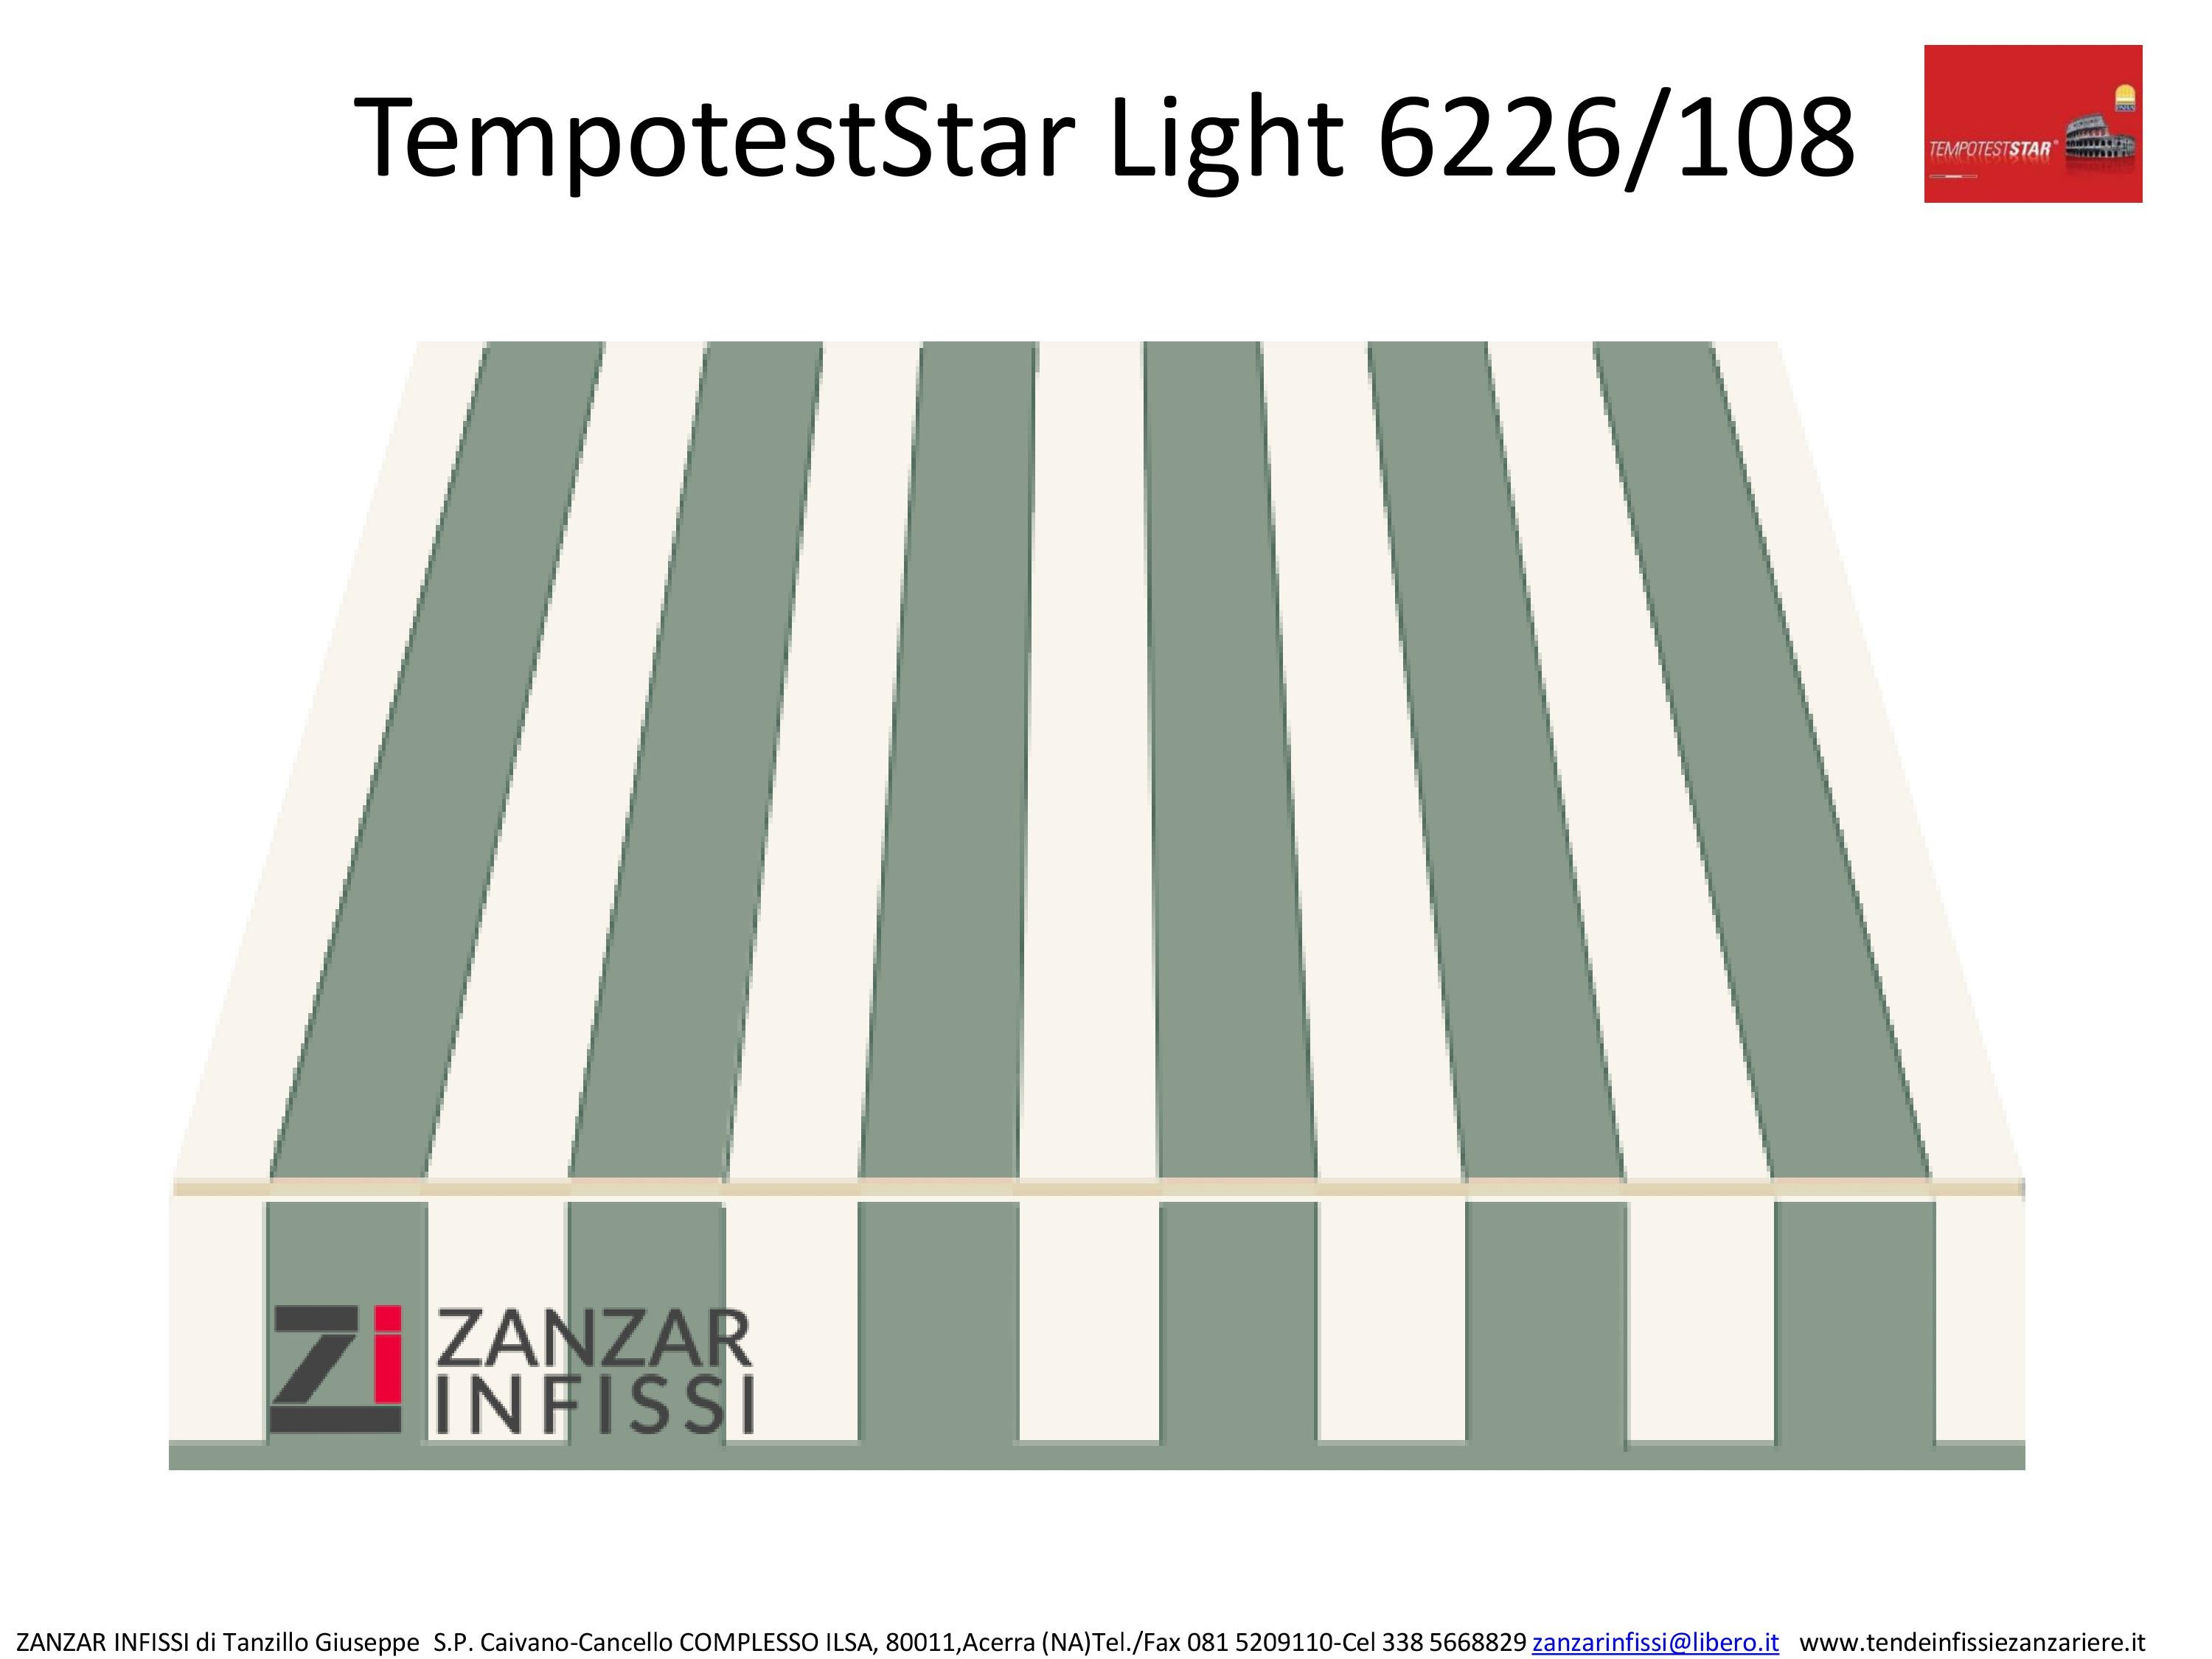 Tempotest star light 6226/108